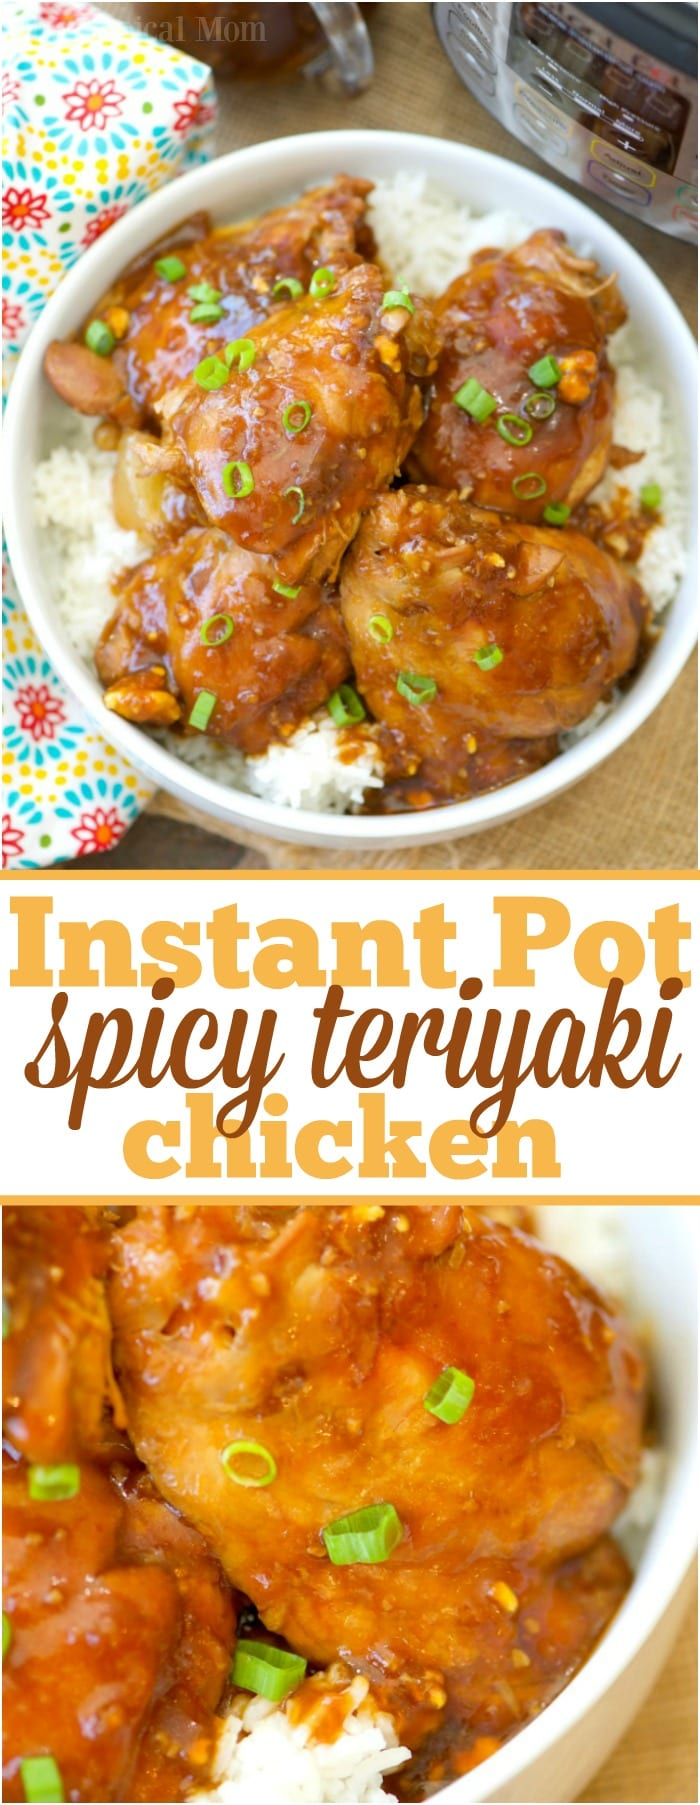 These are some of the most incredible Instant Pot spicy teriyaki chicken thighs I've ever made in my pressure cooker! Moist chicken with a thick sweet and spicy homemade teriyaki sauce you and your kids will love. Healthy dinner loaded with lots of flavor and made in  less than 15 minutes! #instantpot #pressurecooker #teriyaki #chicken #thighs #spicy #healthy #dinner